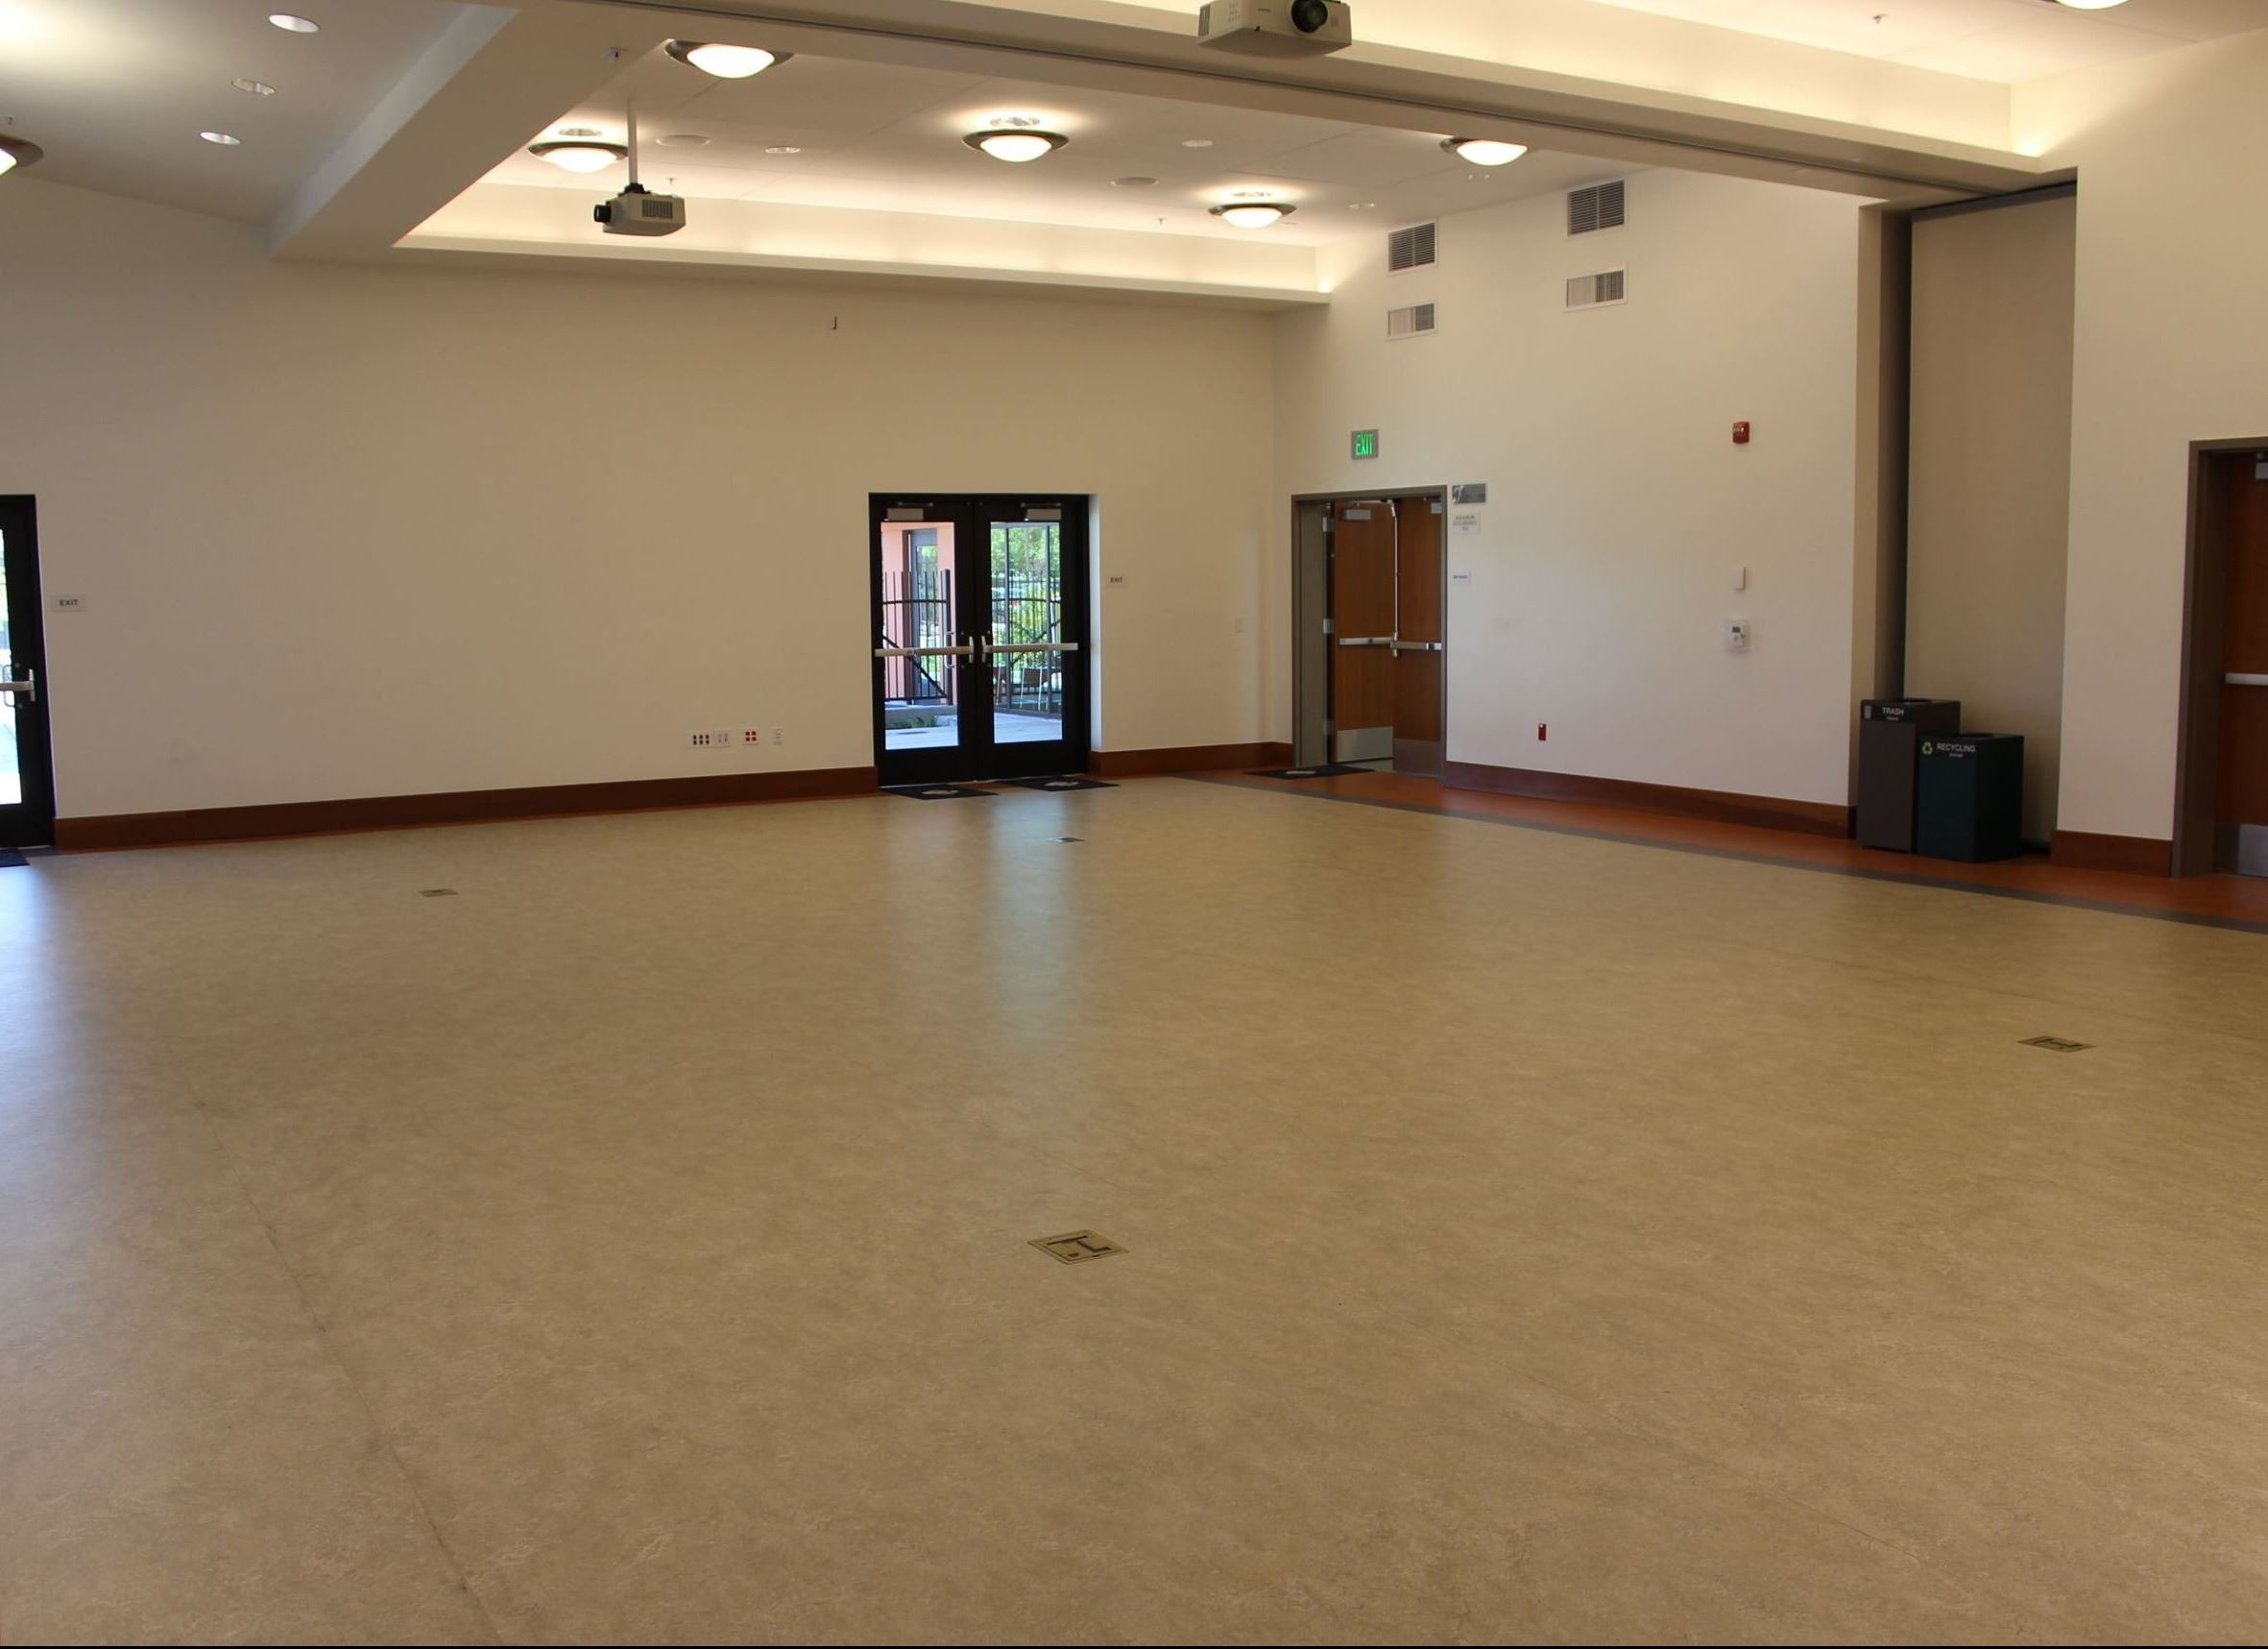 Inside Community Hall